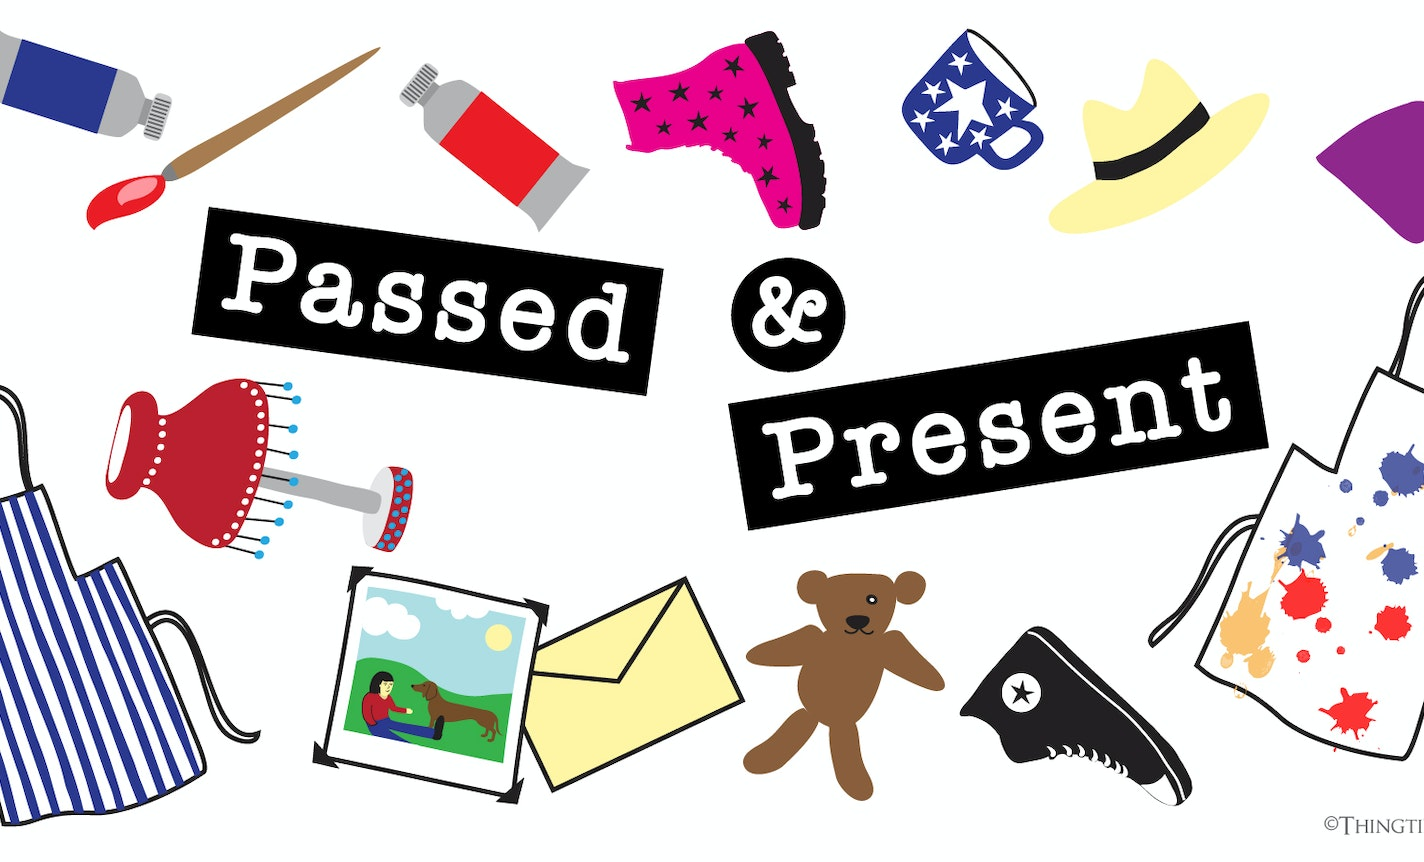 Show & Tale: Passed & Present